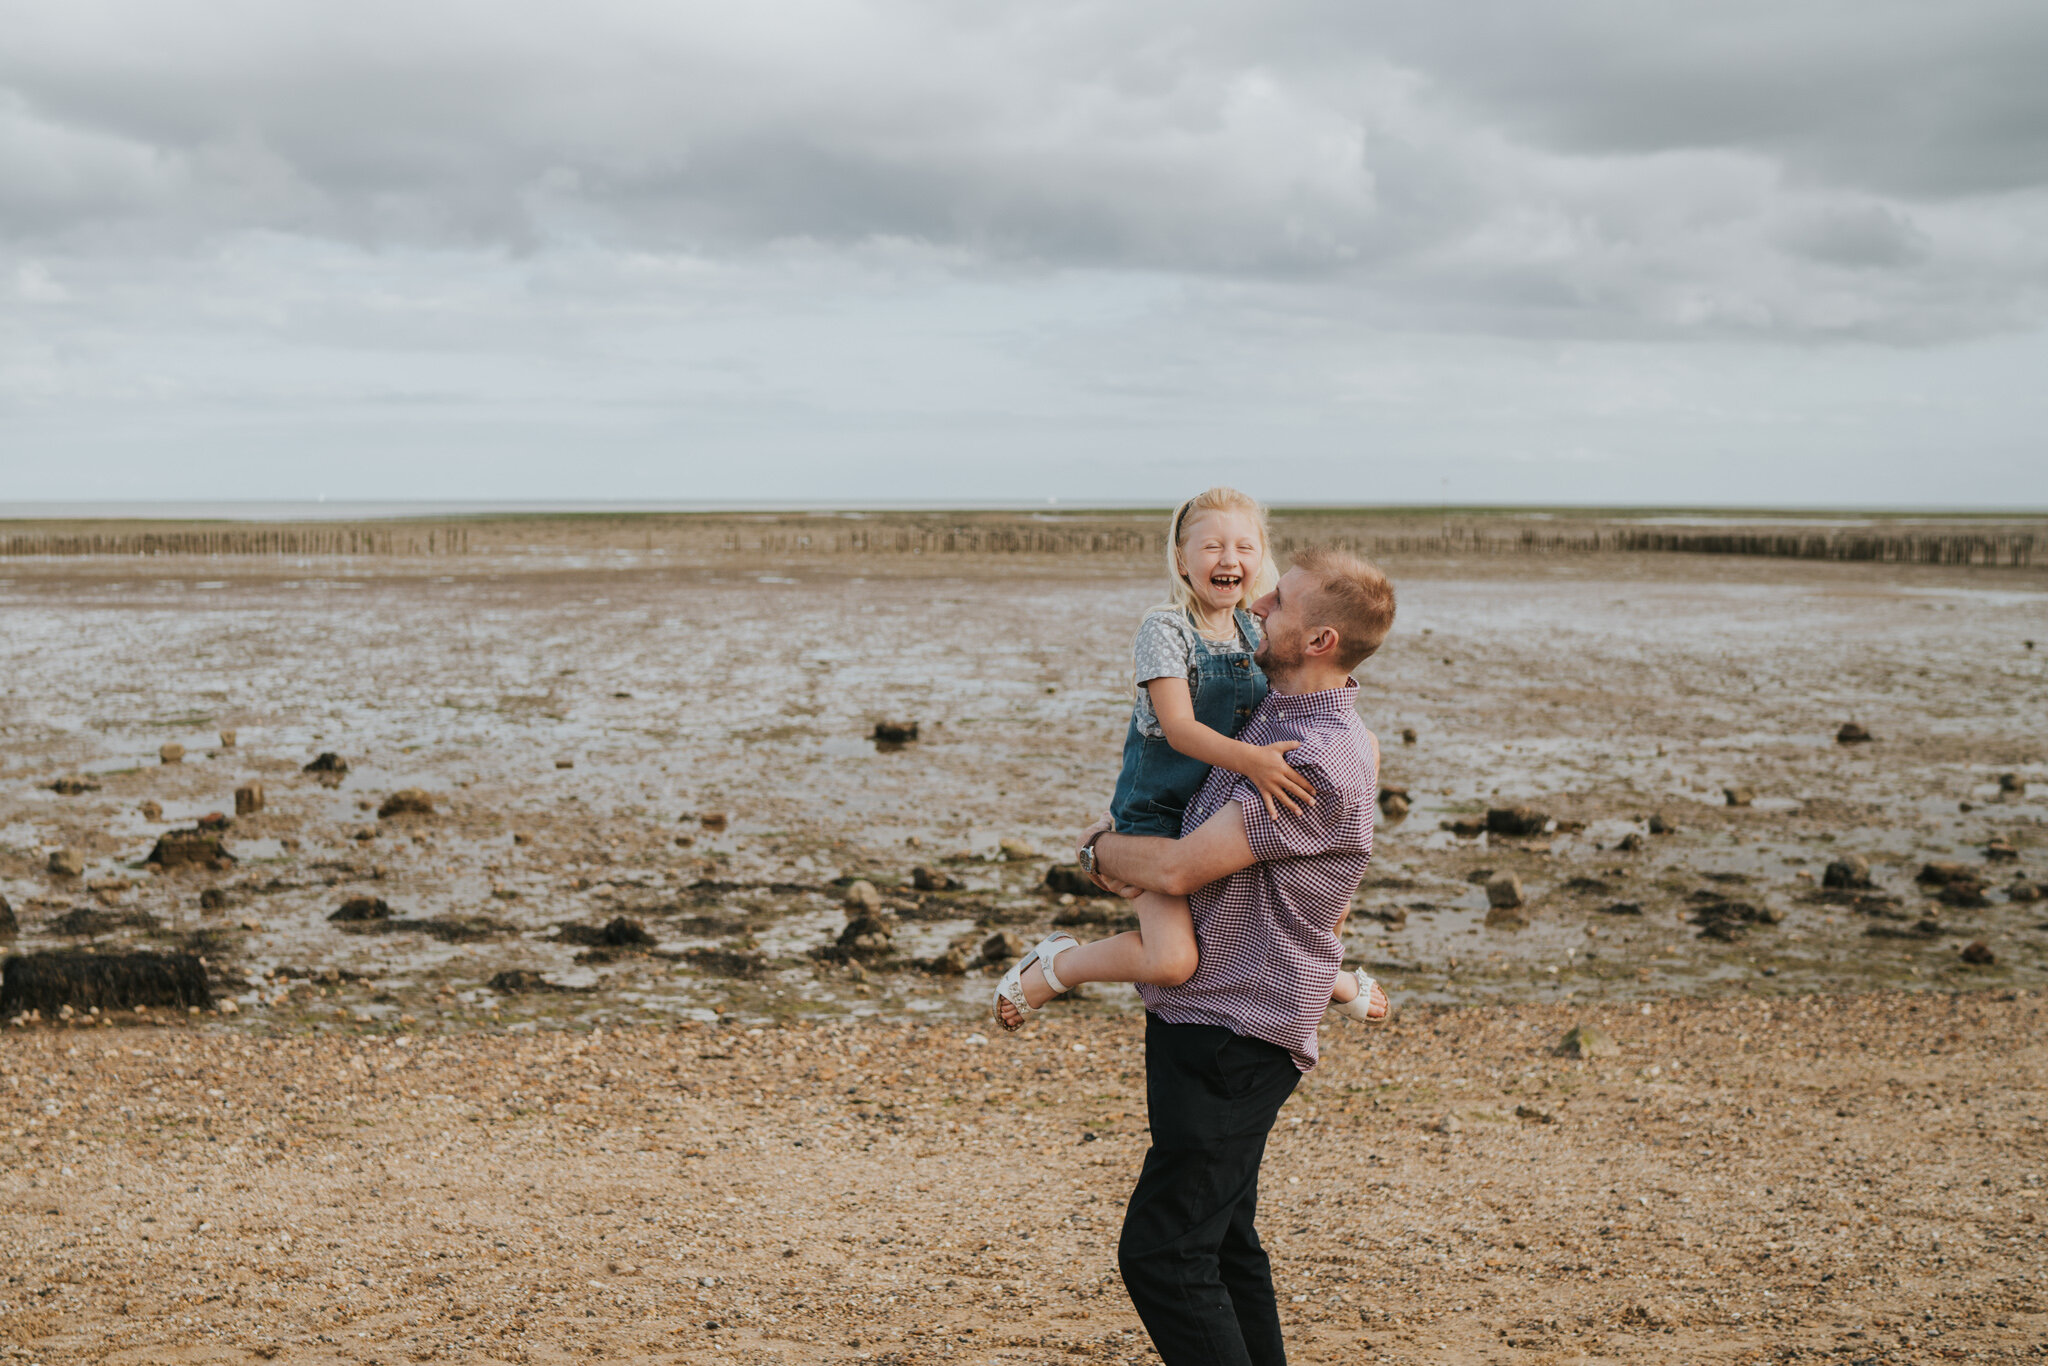 celebratory-beach-family-session-thomson-family-cudmore-grove-east-mersea-grace-elizabeth-colchester-essex-devon-suffolk-and-norfolk-alternative-wedding-and-family-photographer (24 of 53).jpg